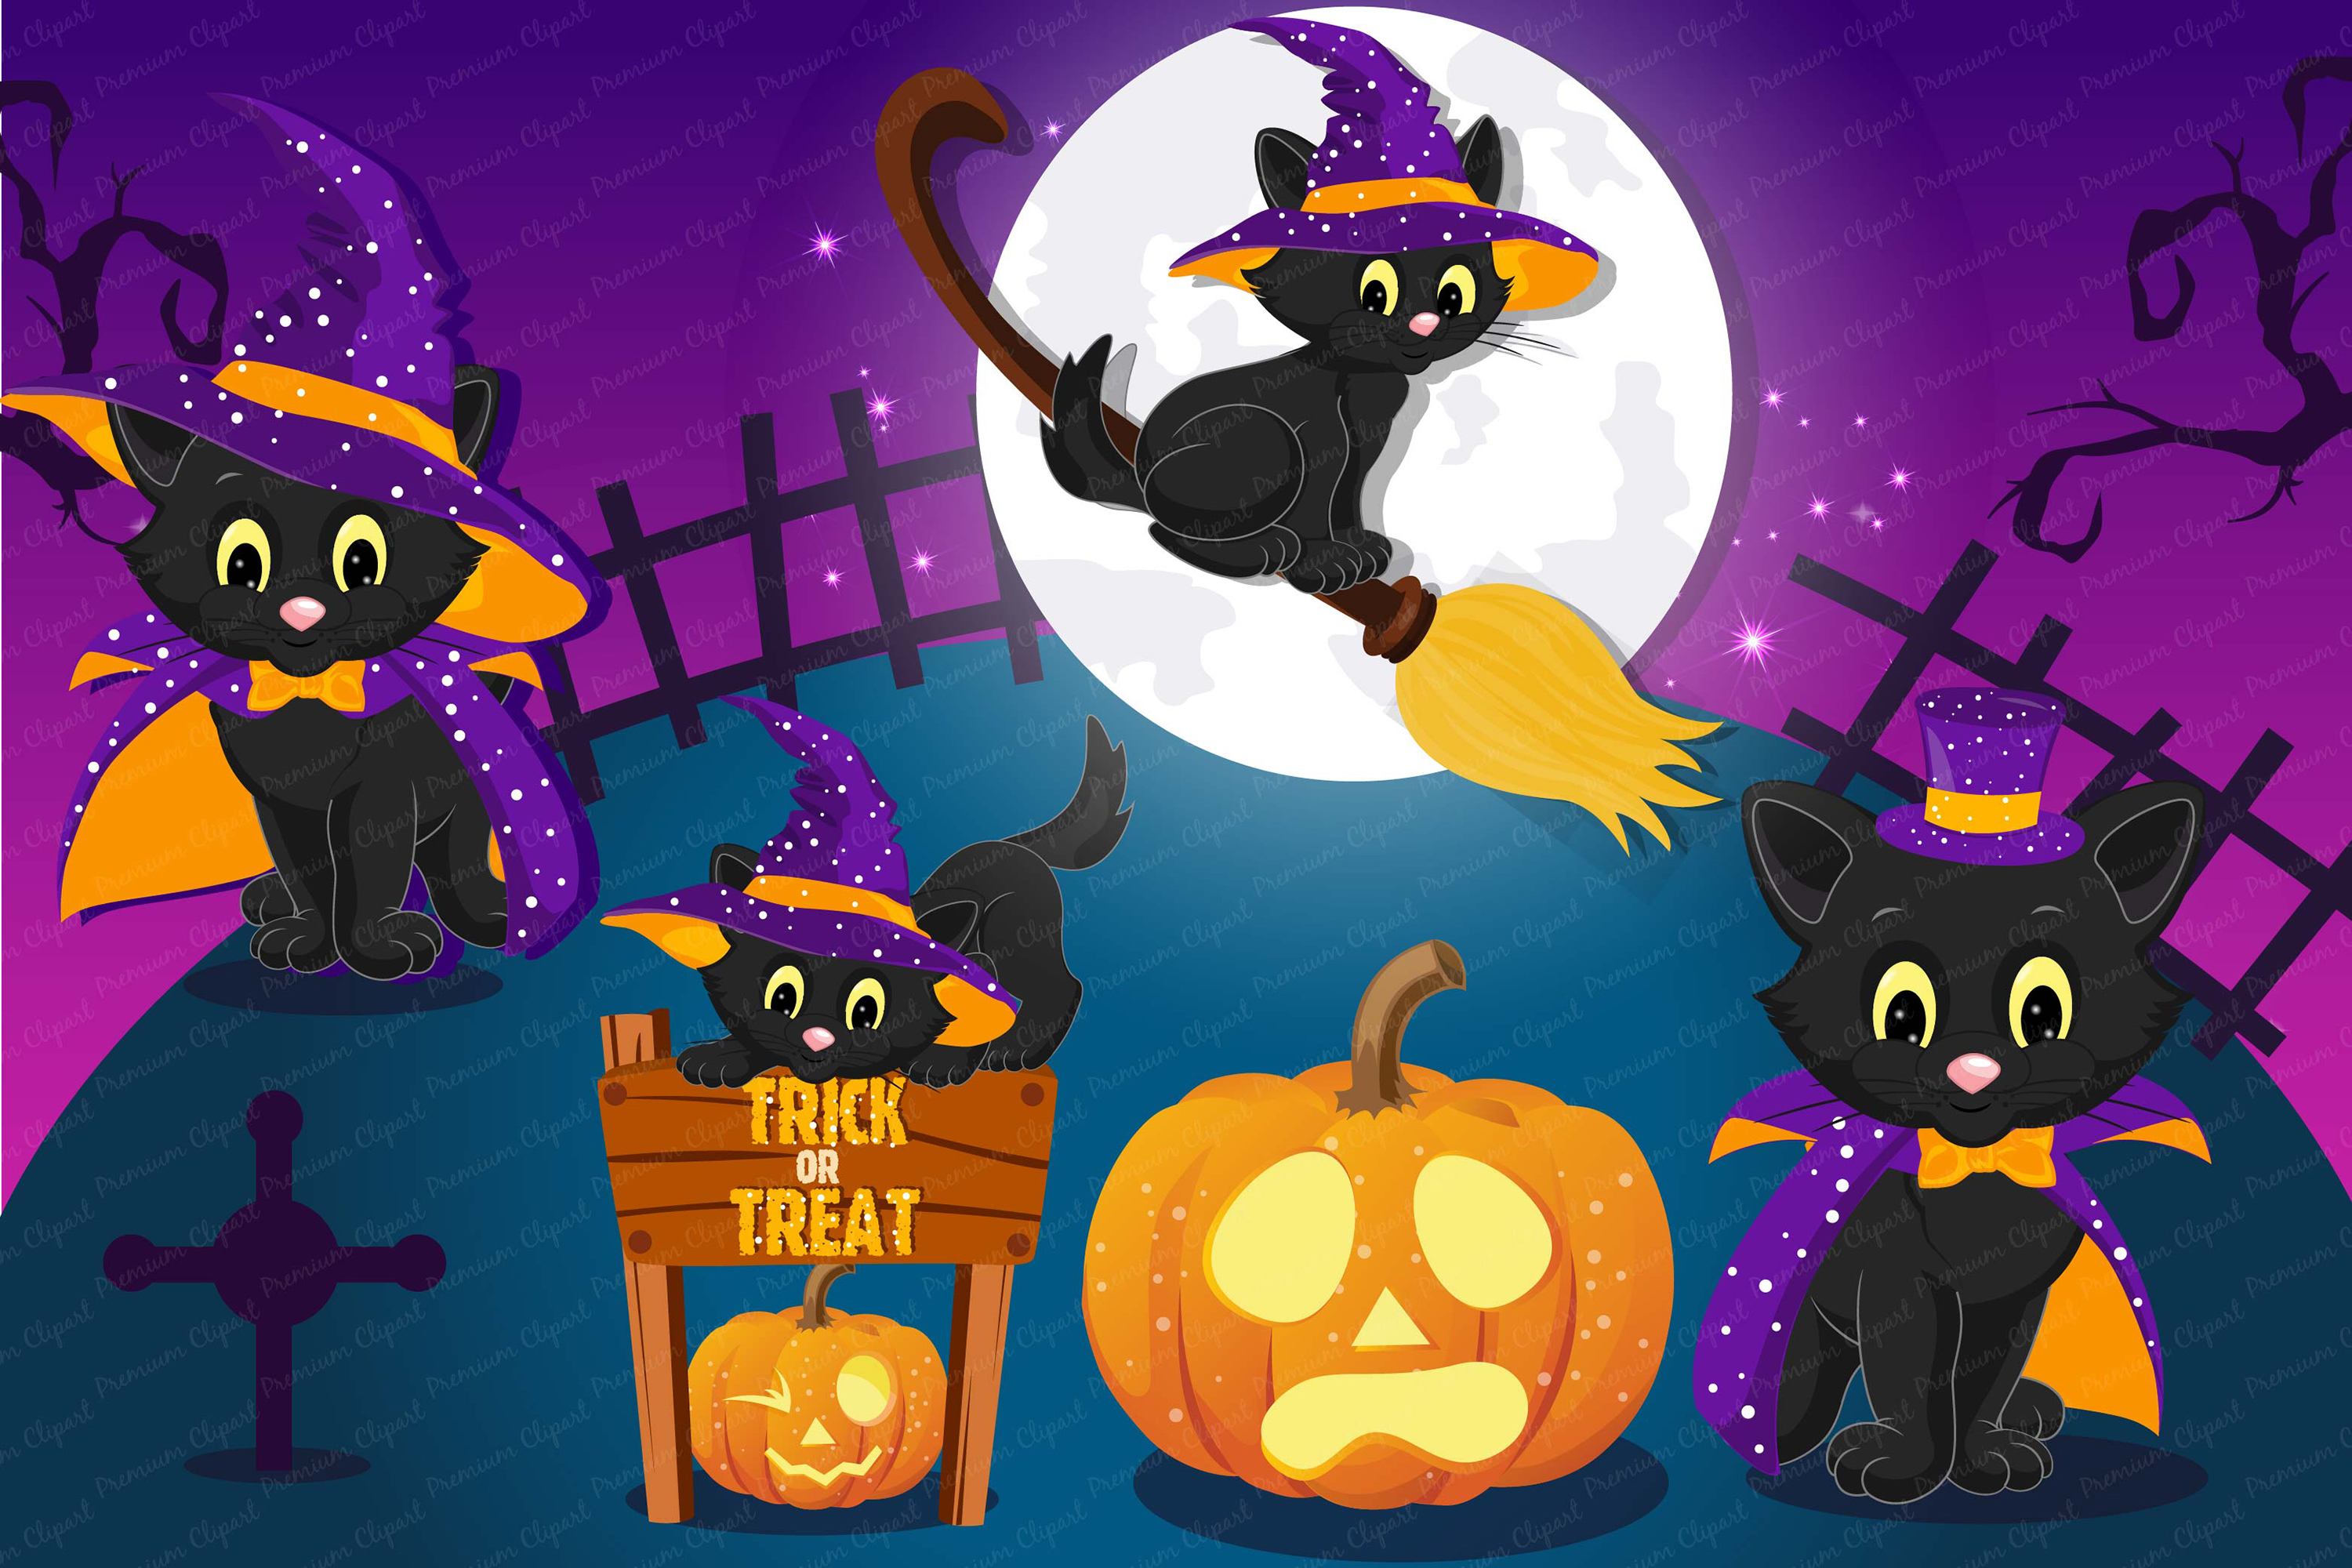 Halloween bundle, Halloween illustrations, Halloween pumpkin example image 2